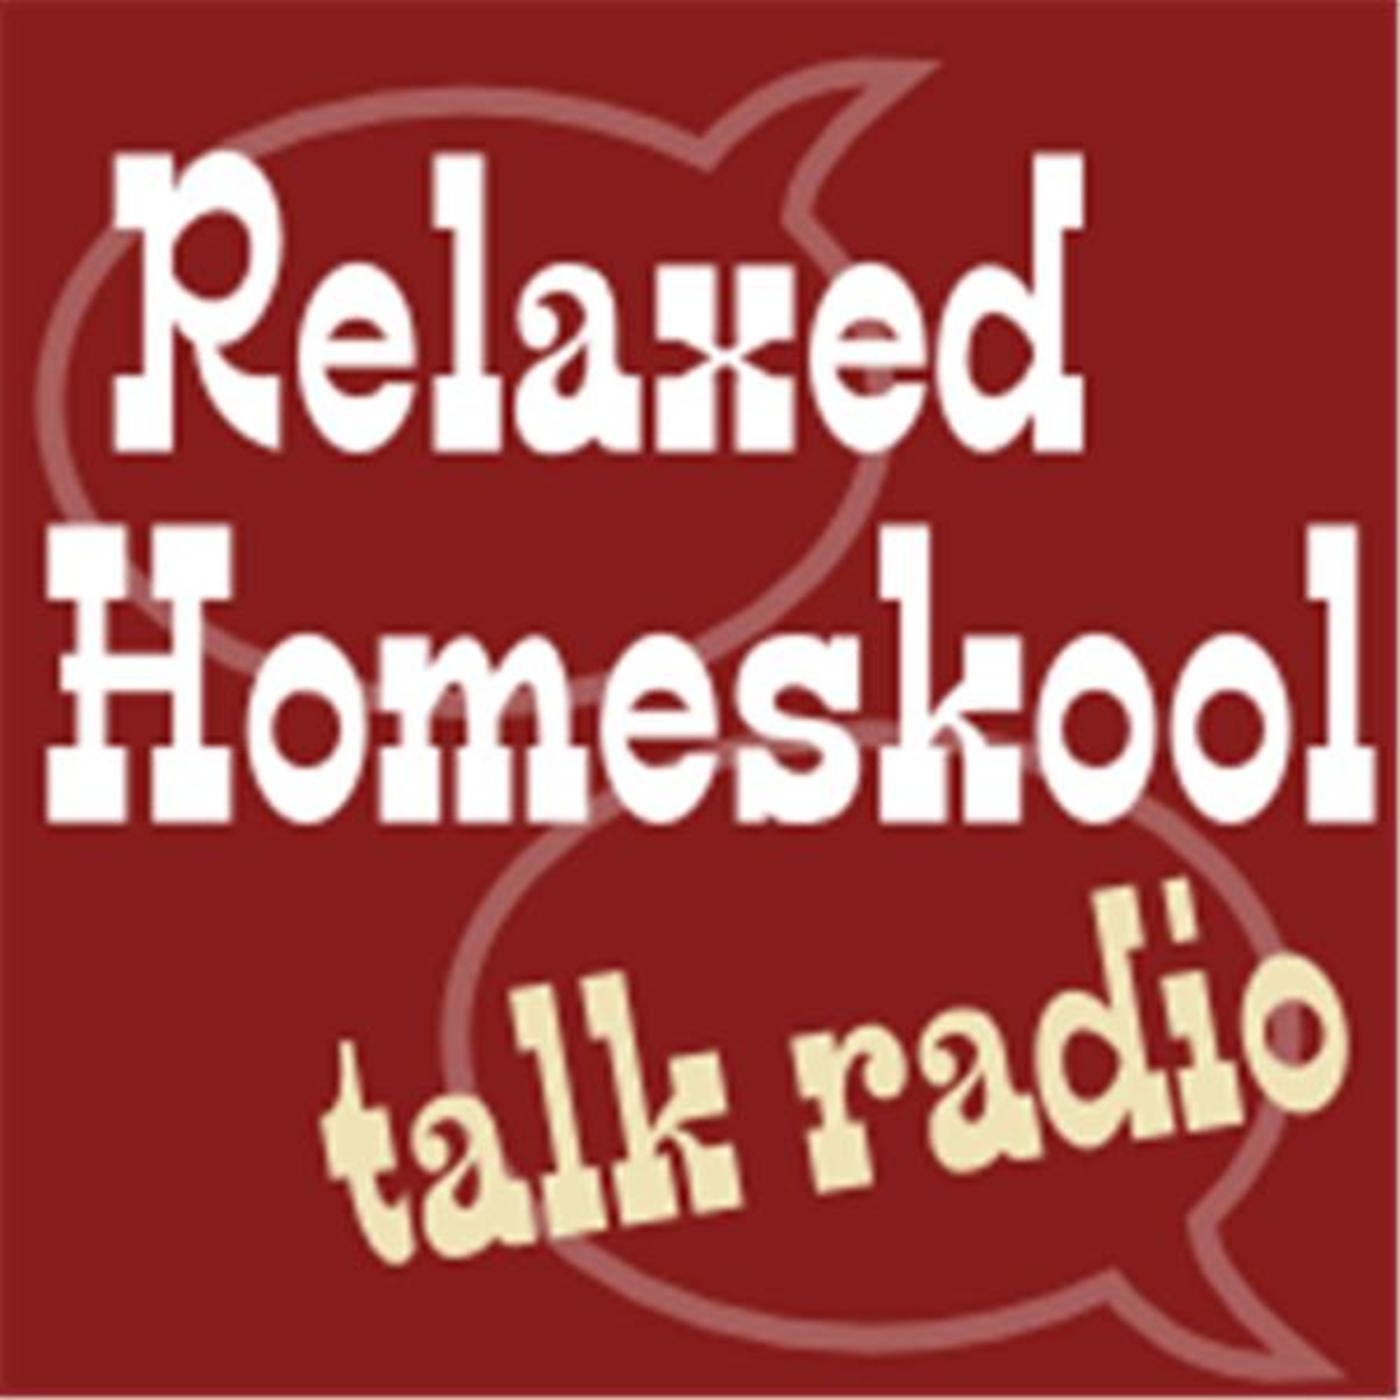 Relaxed Homeskool Talk Radio